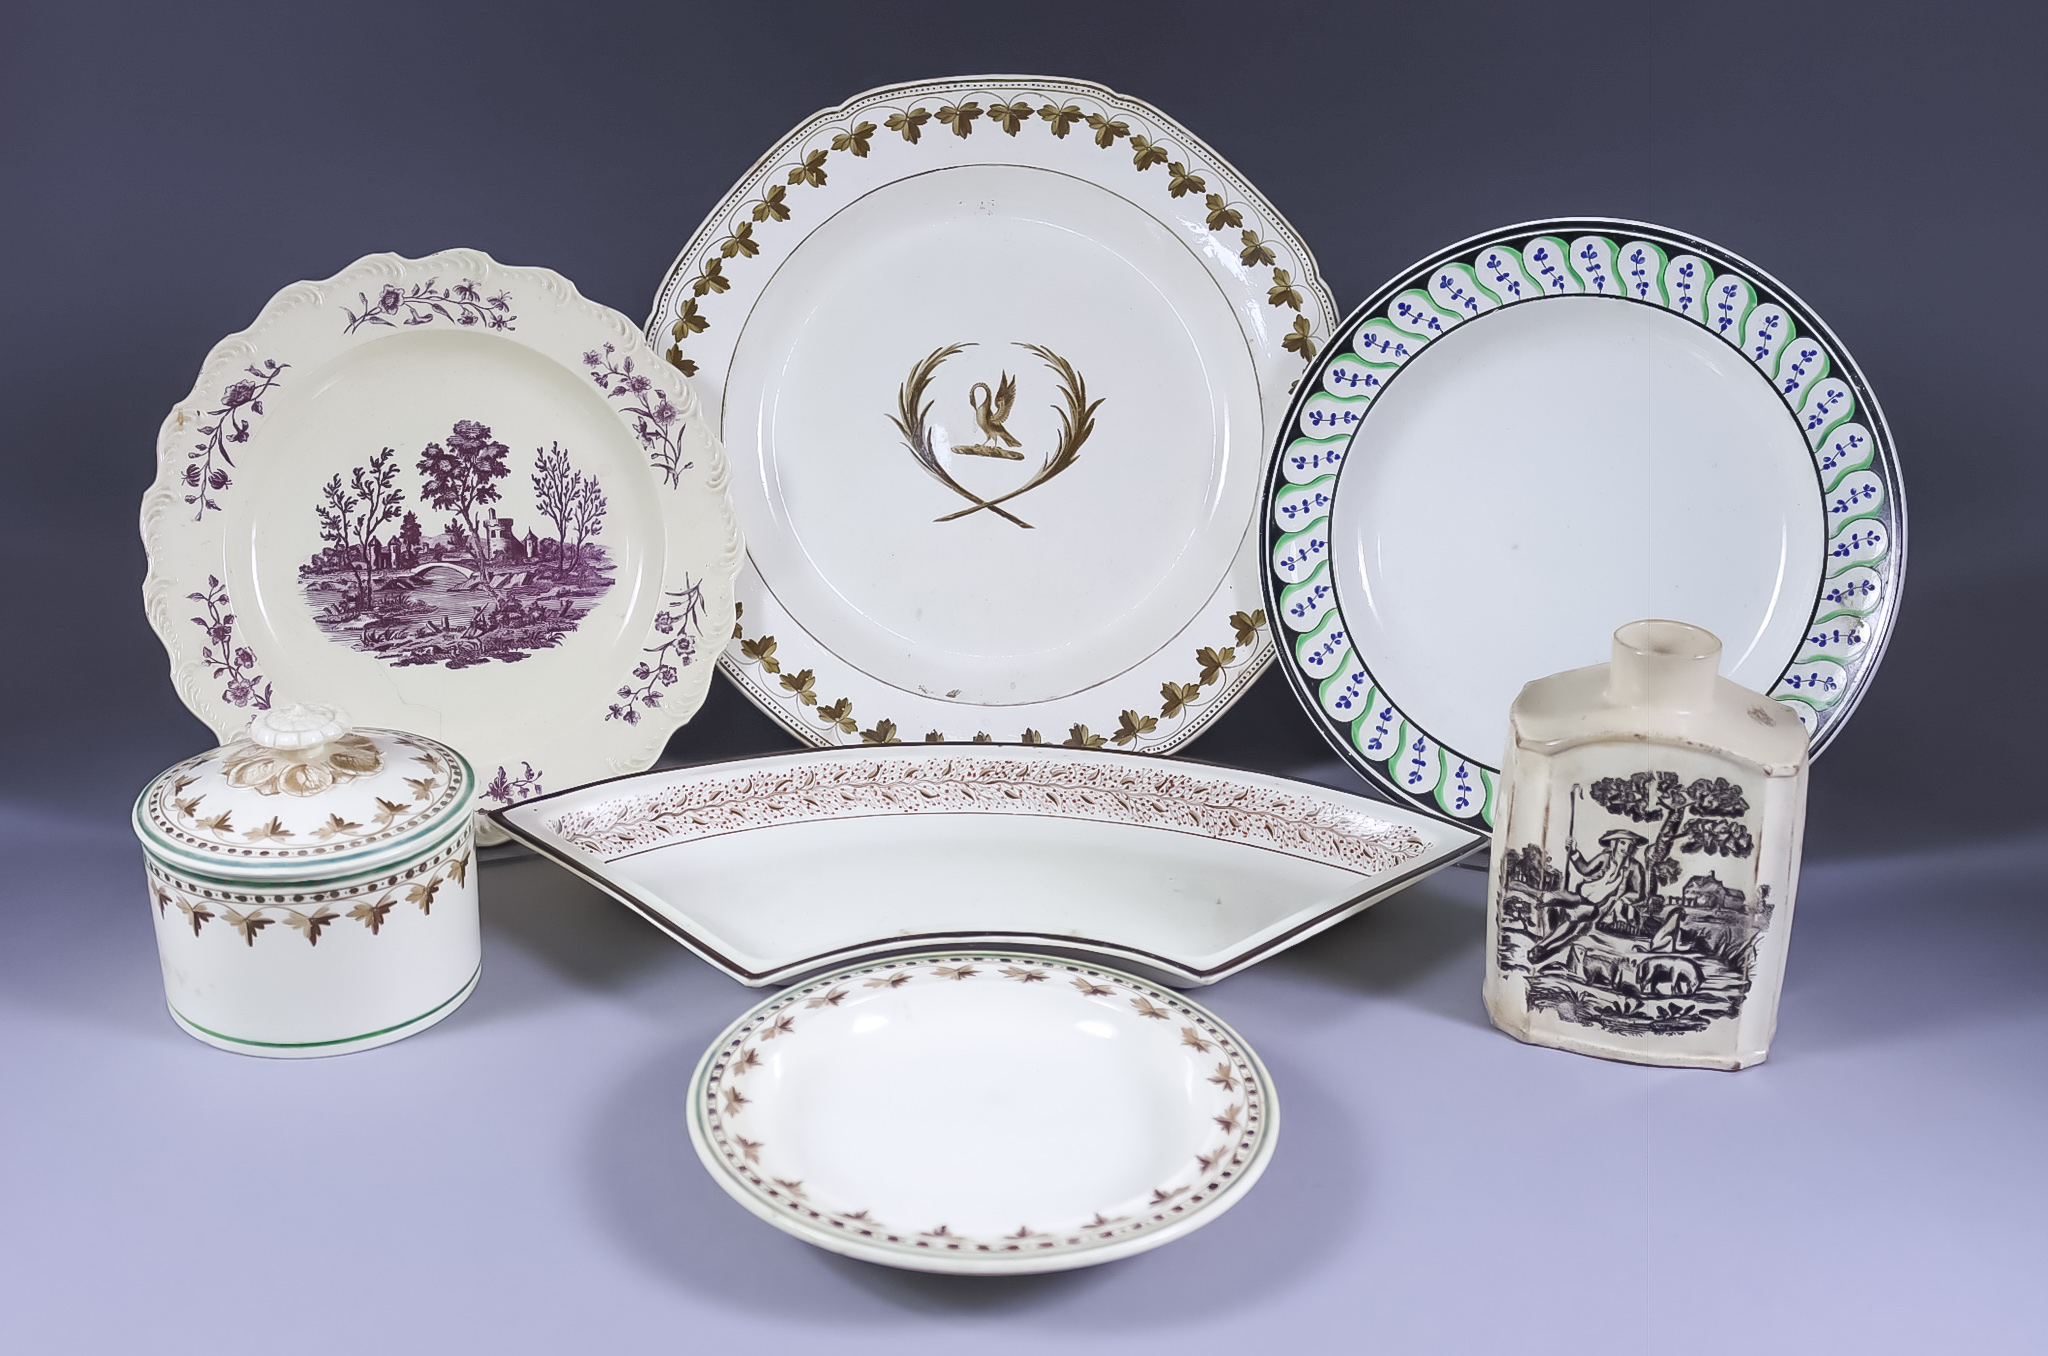 A Small Collection of English Creamware Pottery, Late 18th/Early 19th Century, including - Wedgewood